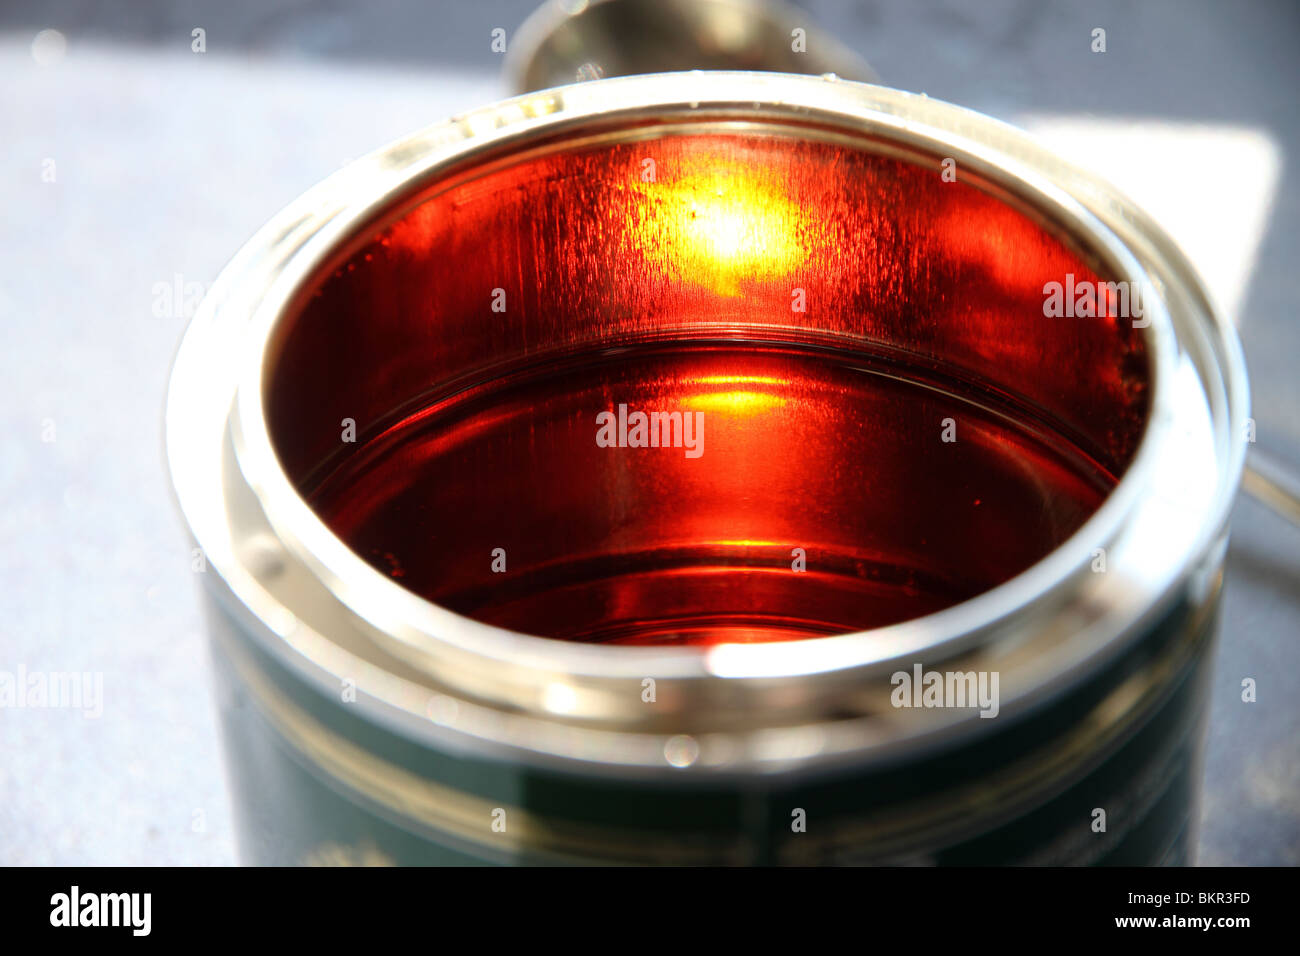 golden syrup - Stock Image